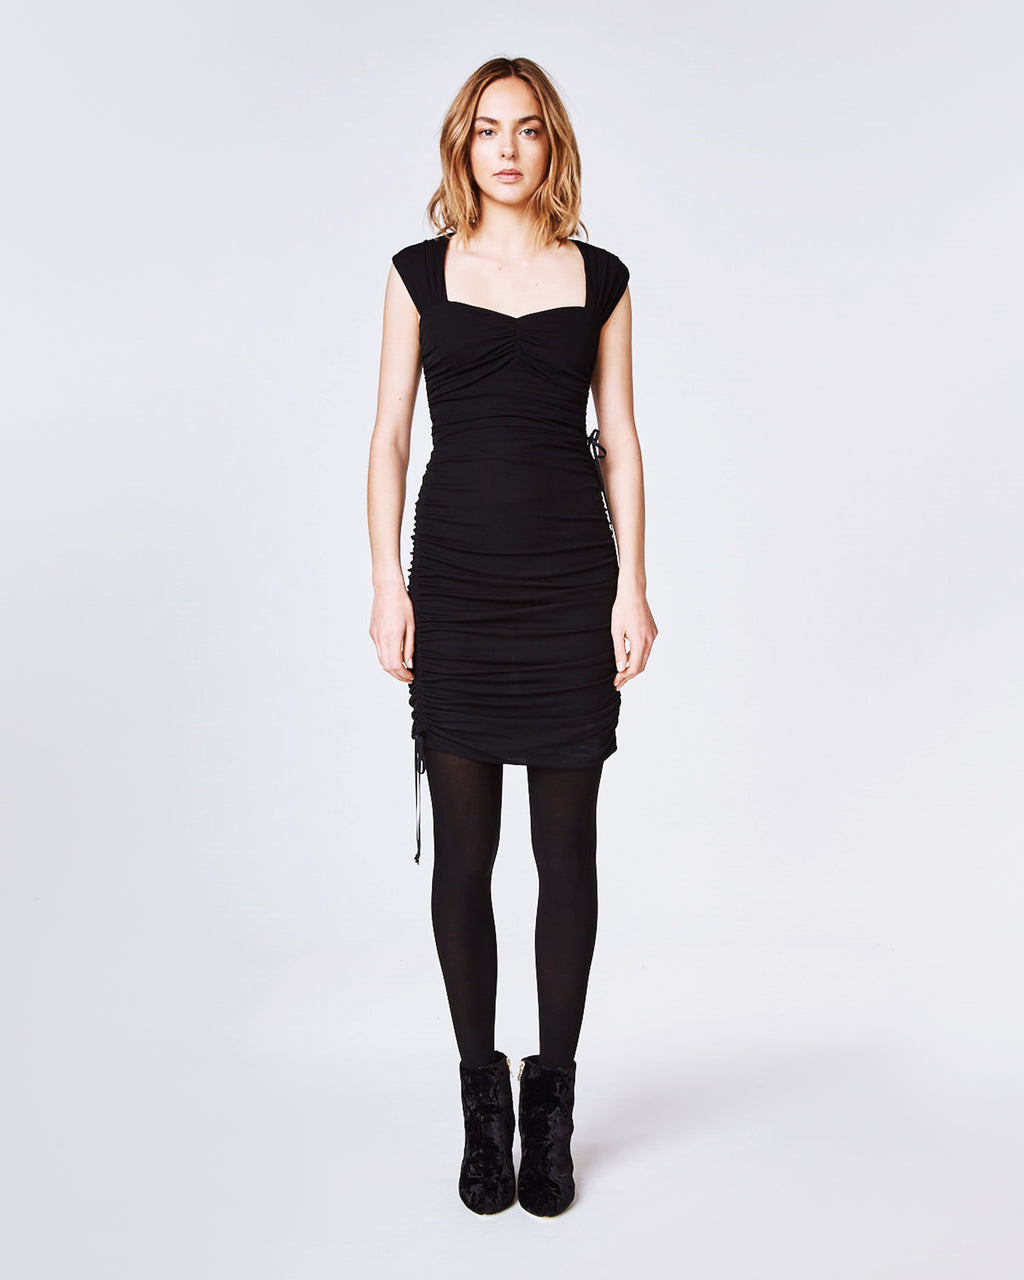 AS10175 - LIGHT WEIGHT MATTE JERSEY RUCHED DRESS - dresses - midi - In a lightweight jersey, this dress features a sweetheart neckline and skillful ruching to createfigure-flattering silhouette. With an open back and side drawstrings, this little black dress can be paired with your favorite heels for a completedlook. Finished with a concealed zipper and button for closure. Fully lined.